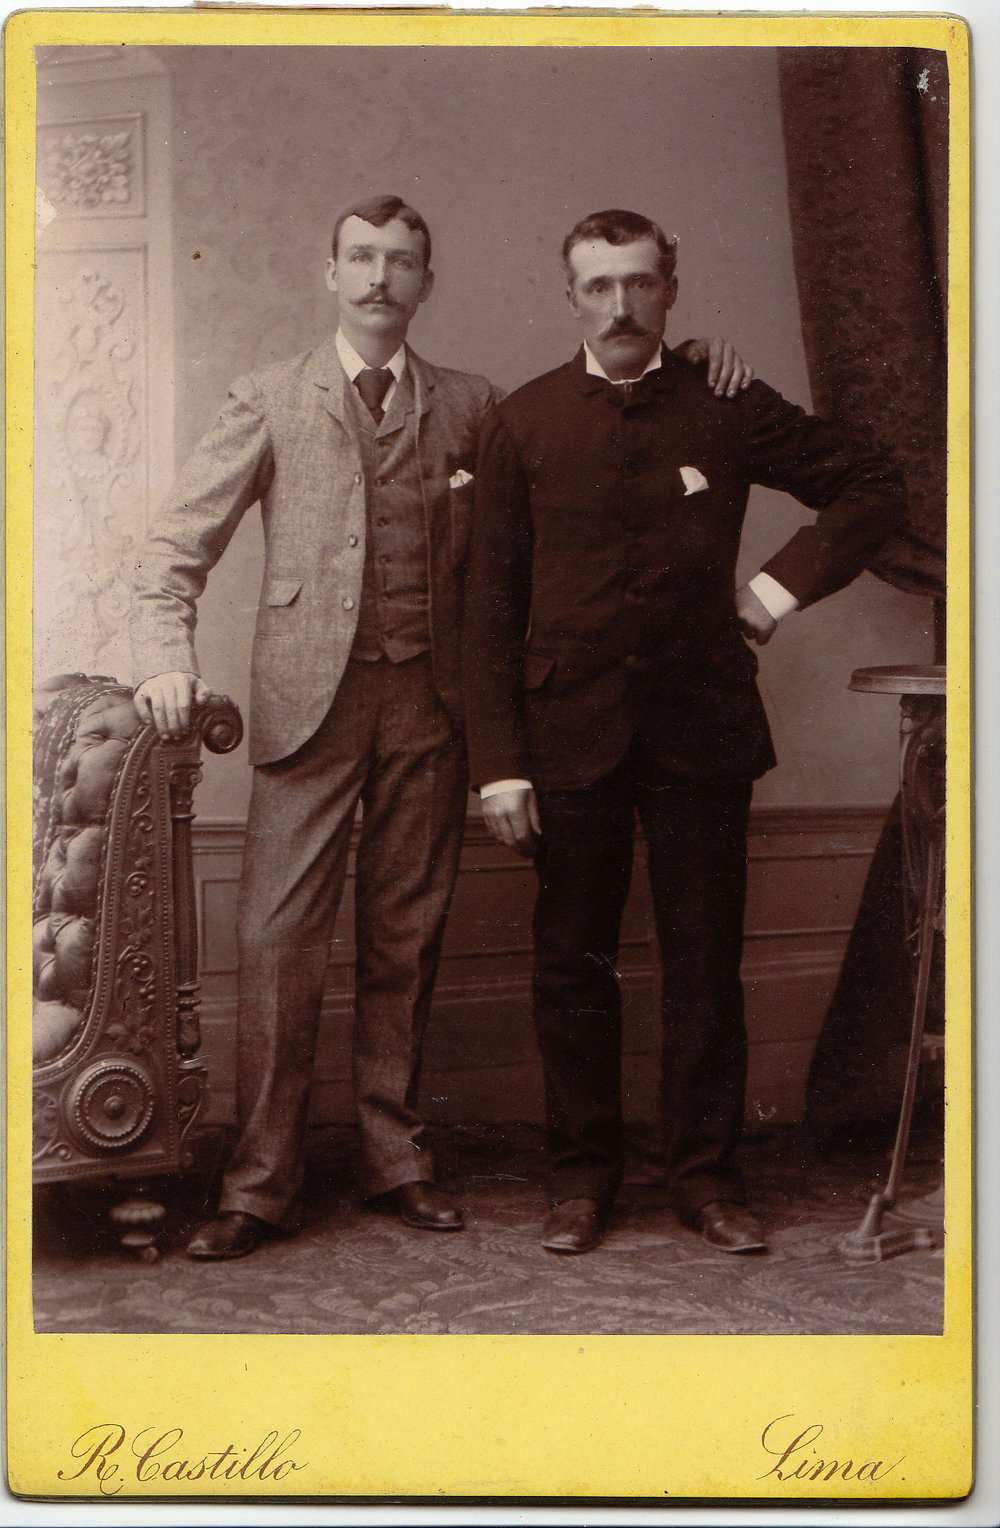 Llun o William Keen Whiteway a David Davies. Does dim dyddiad. Ond mae'r llun wedi ei gymryd yn Lima, Perw. Ar ôl diwedd y rhyfel yn Chile, efallai?  A photograph of William Keen Whiteway and David Davies. There is no date. But the picture has been taken in Lima, Peru. After the end of the war in Chile, perhaps?